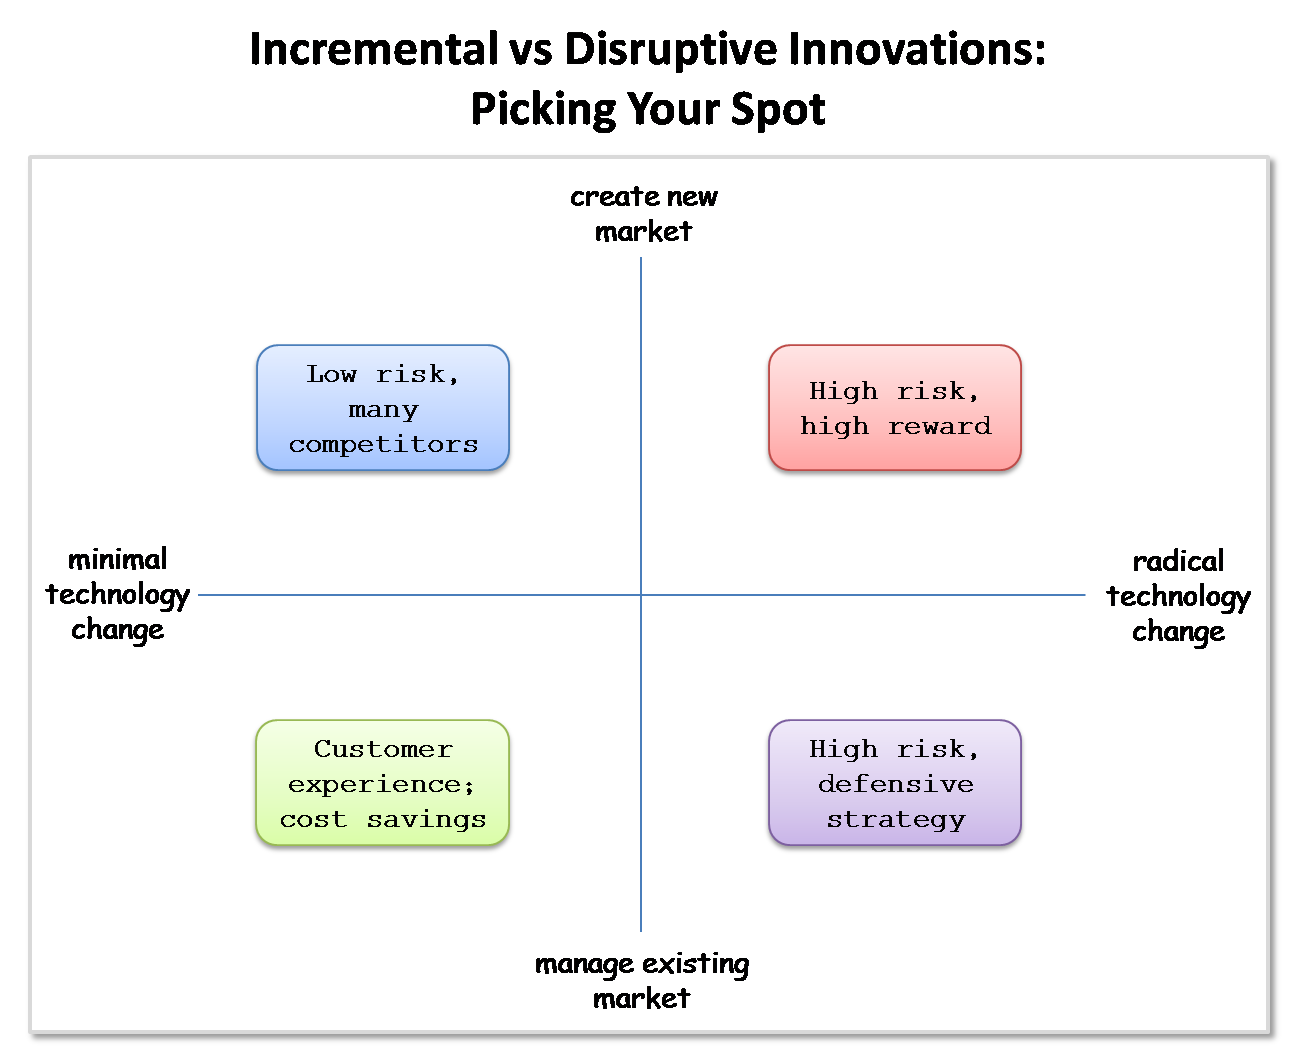 Top Disruptive Innovation Incremental 1302 x 1058 · 48 kB · png